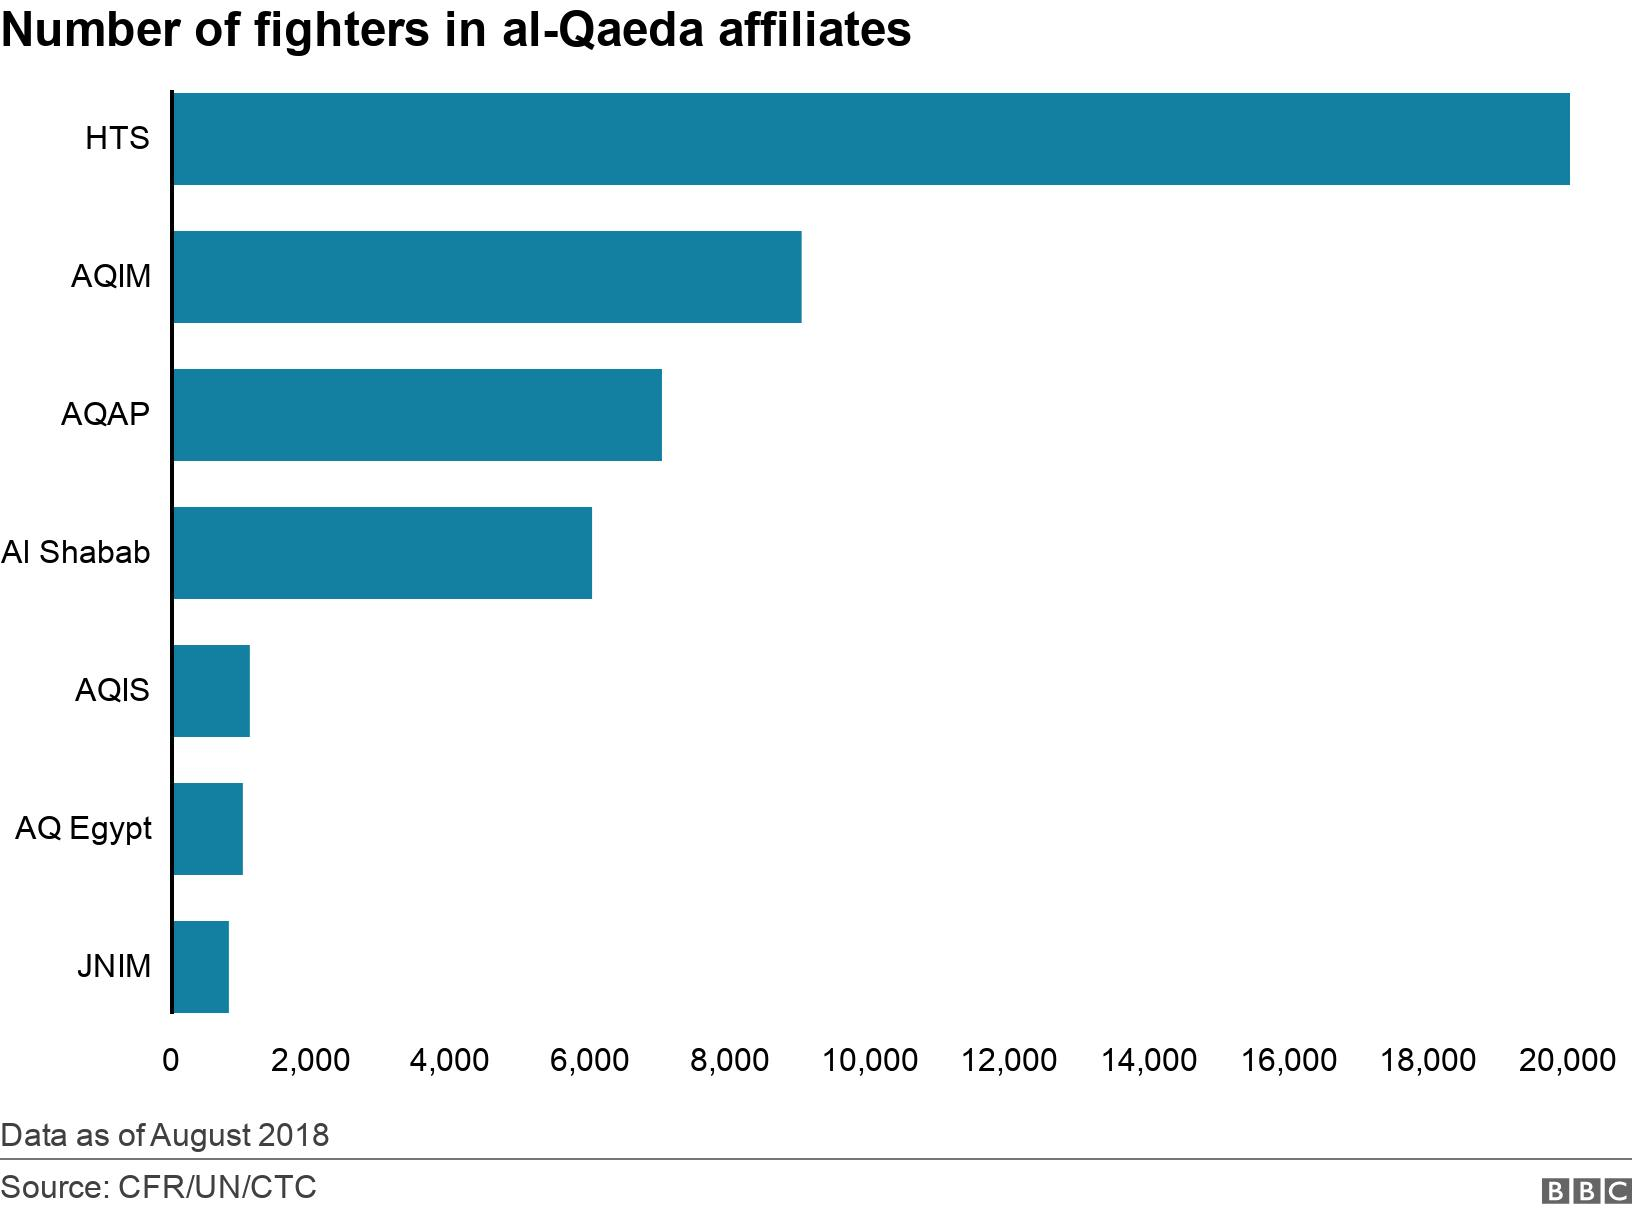 Number of fighters in al-Qaeda affiliates. . Data showing number of fighters in al-Qaeda affiliates  Data as of August 2018.